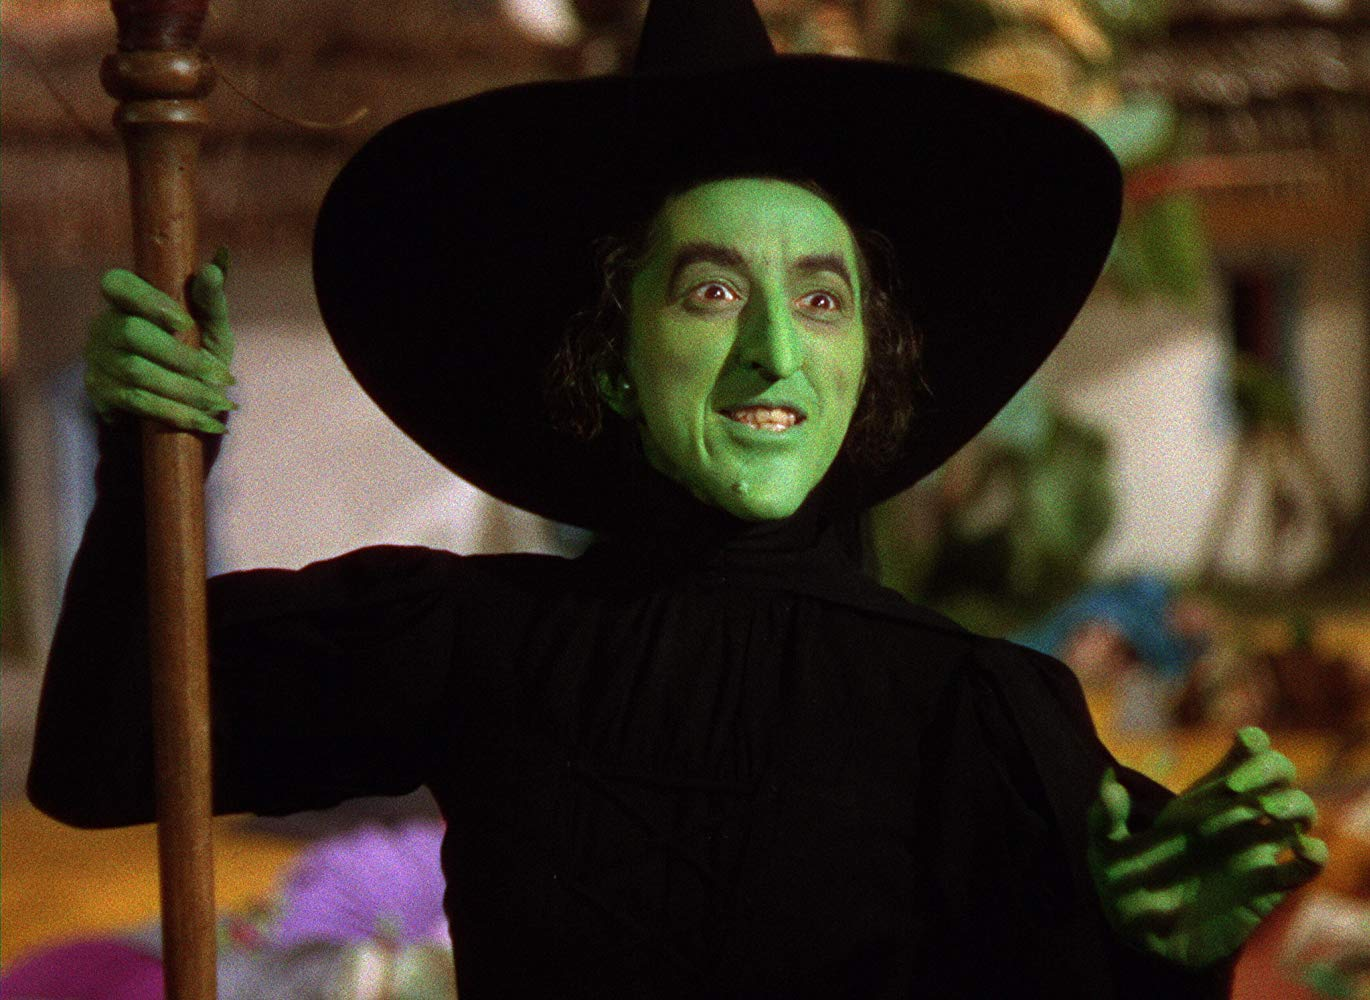 The Wicked Witch of the West (Margaret Hamilton) in The Wizard of Oz (1939)